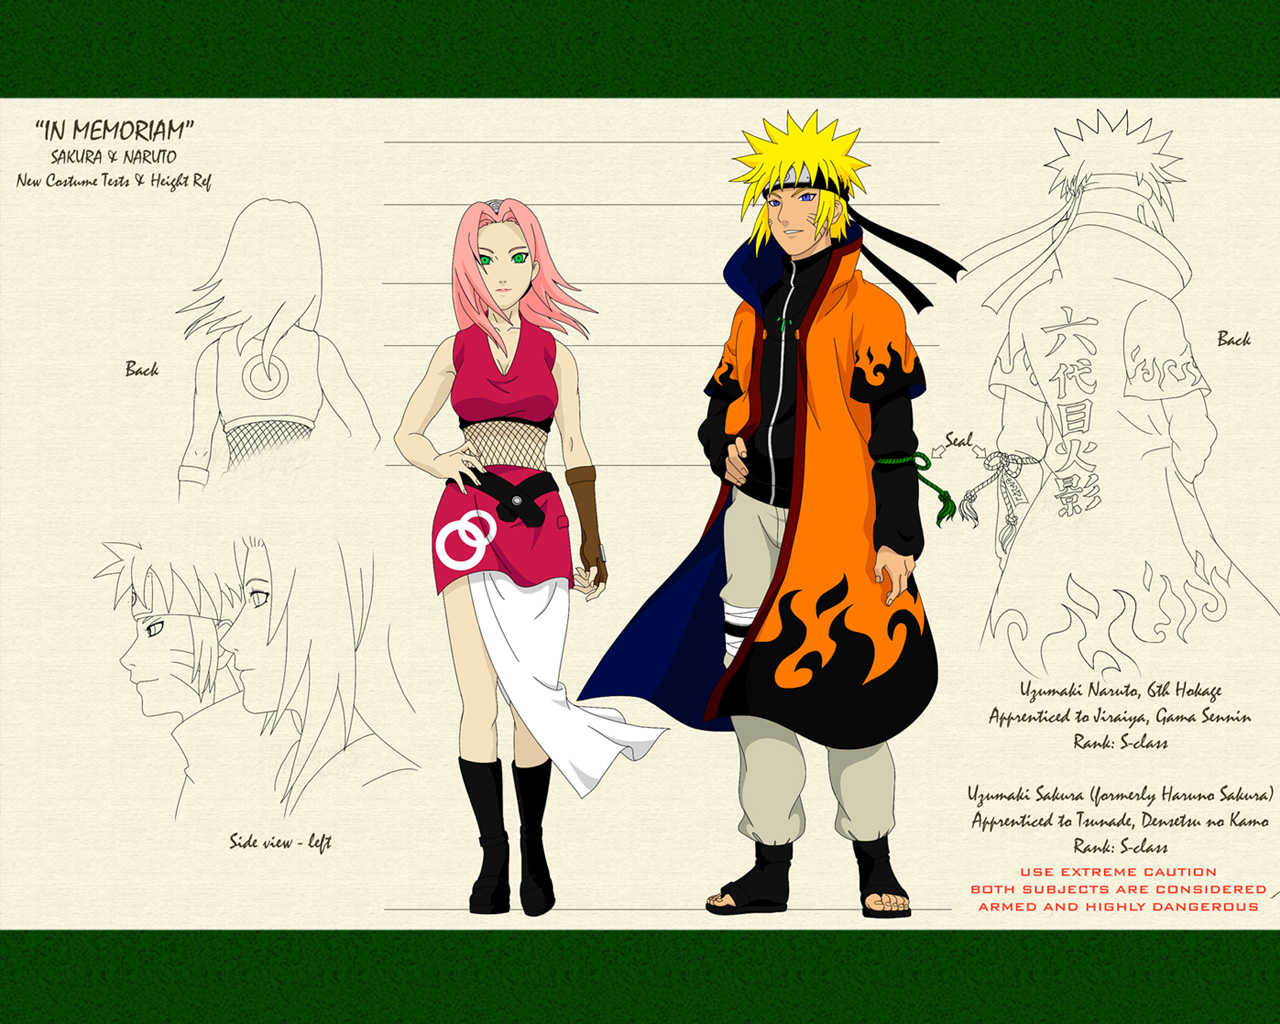 Naruto and Sakura Hokage Naruto Shippuden Wallpapers on this NarutoNaruto Shippuden Naruto And Sakura Kiss